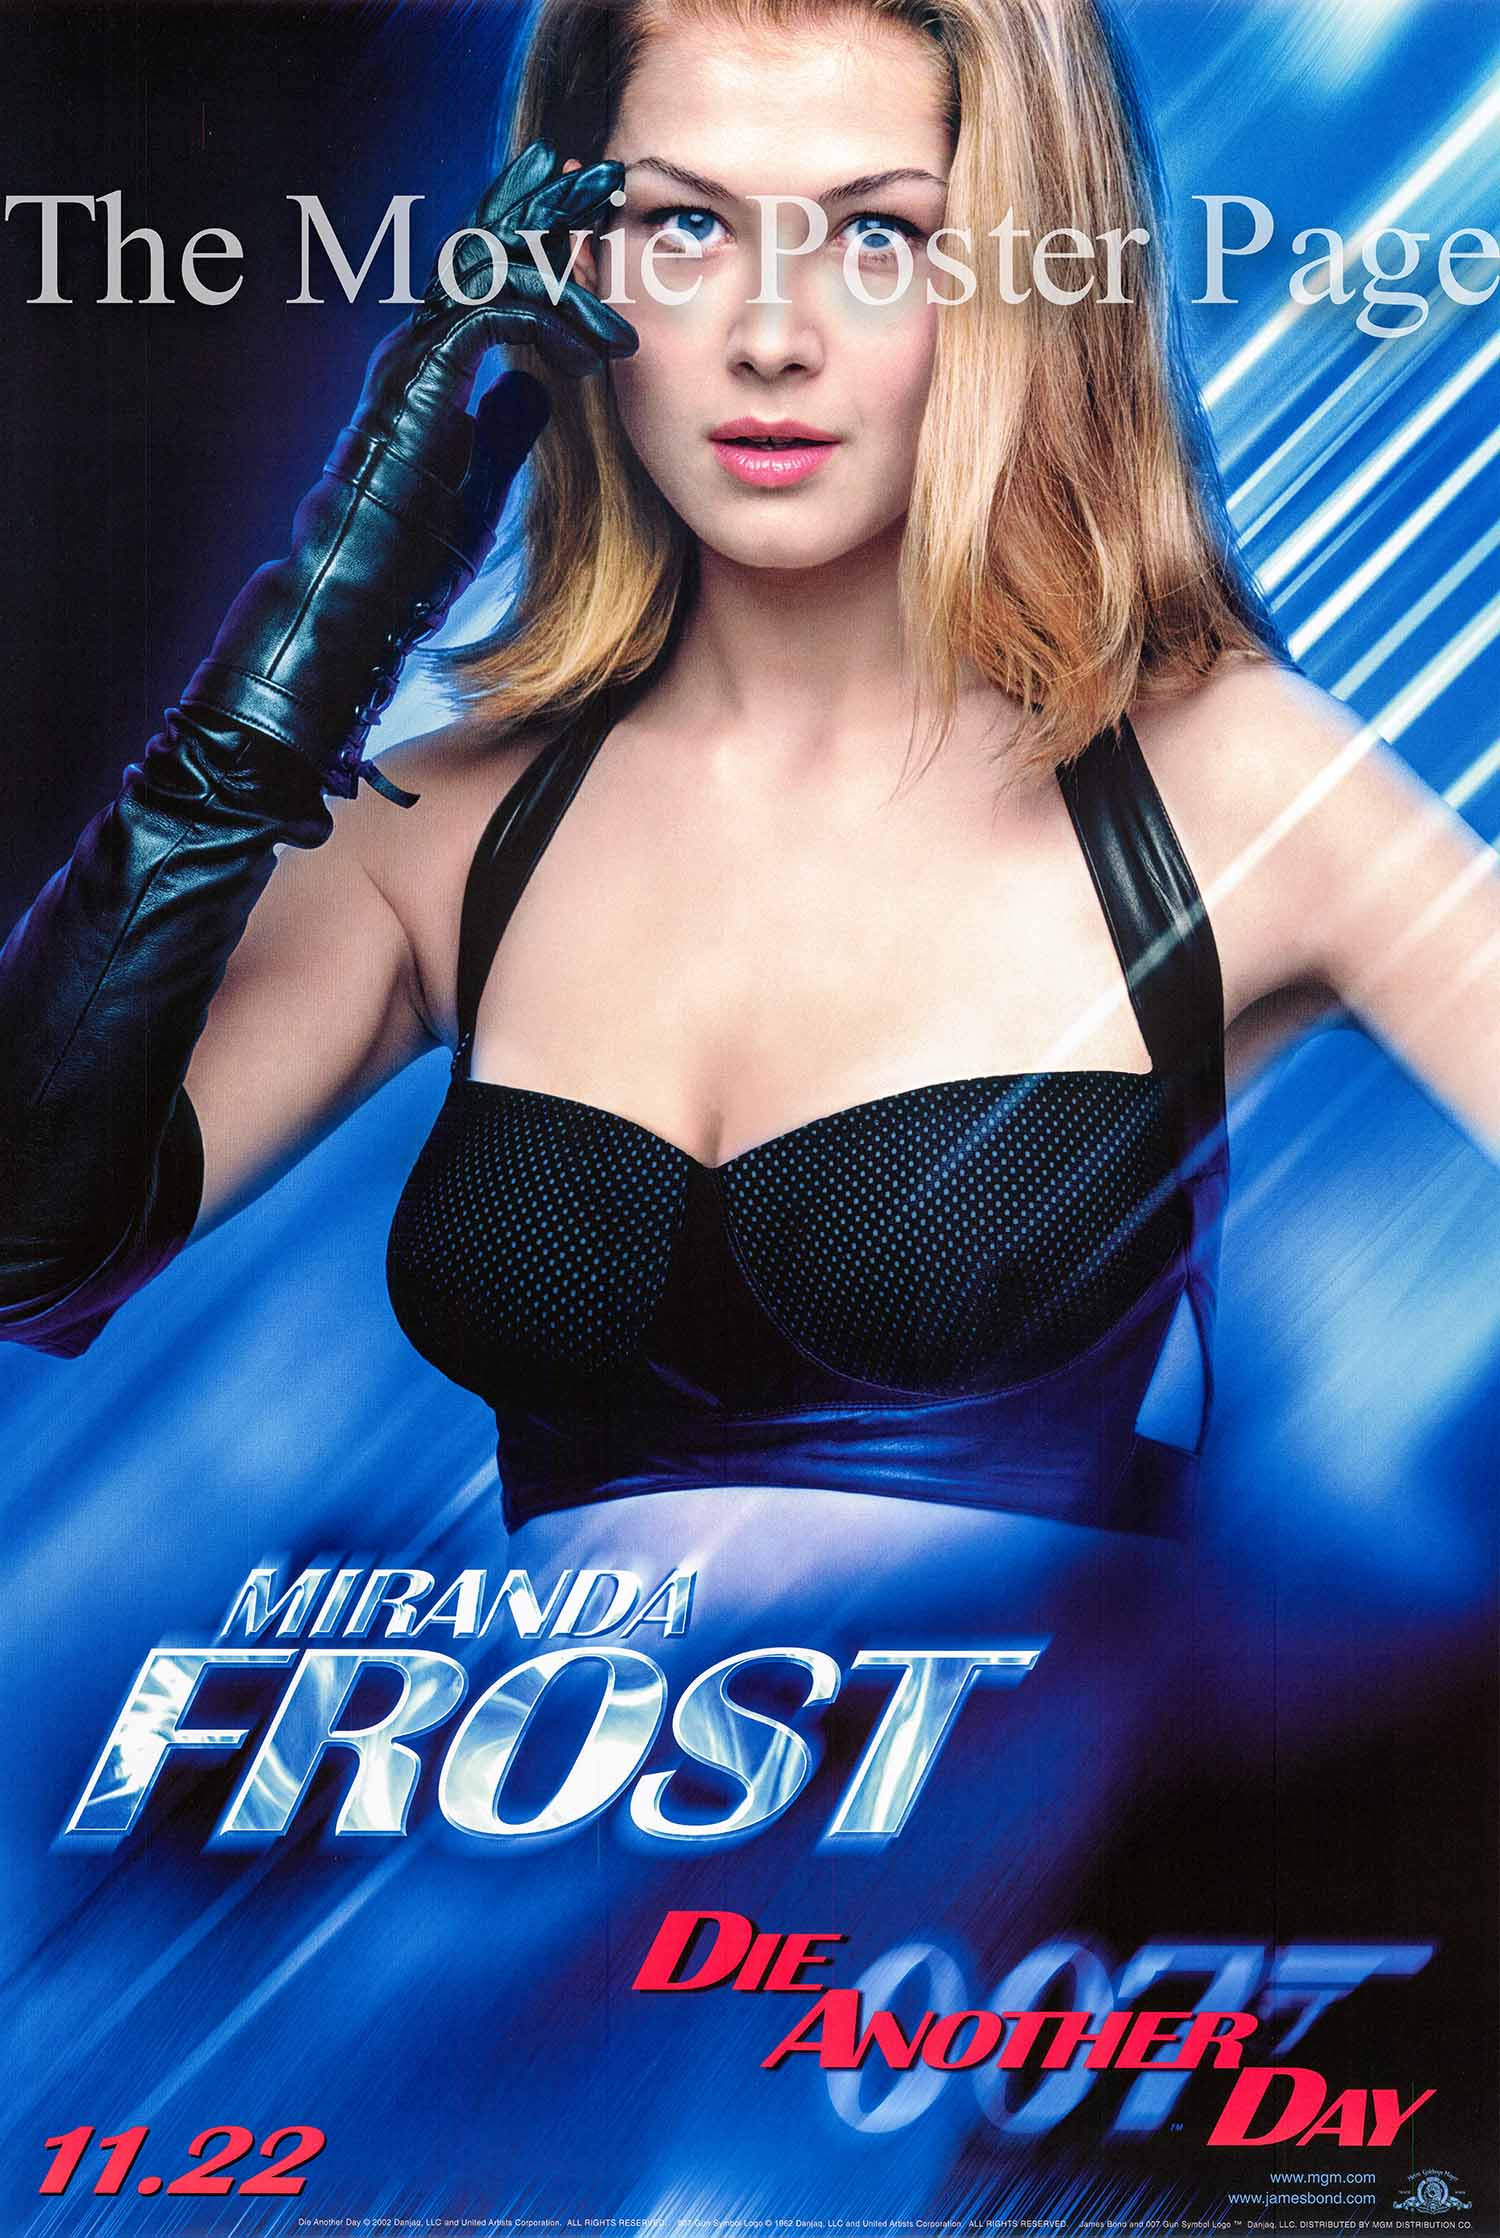 Pictured is a Miranda Frost character advance one-sheet poster made to promote the 2002 Lee Tamahori film Die another Day starring Pierce Brosnan as James Bond.